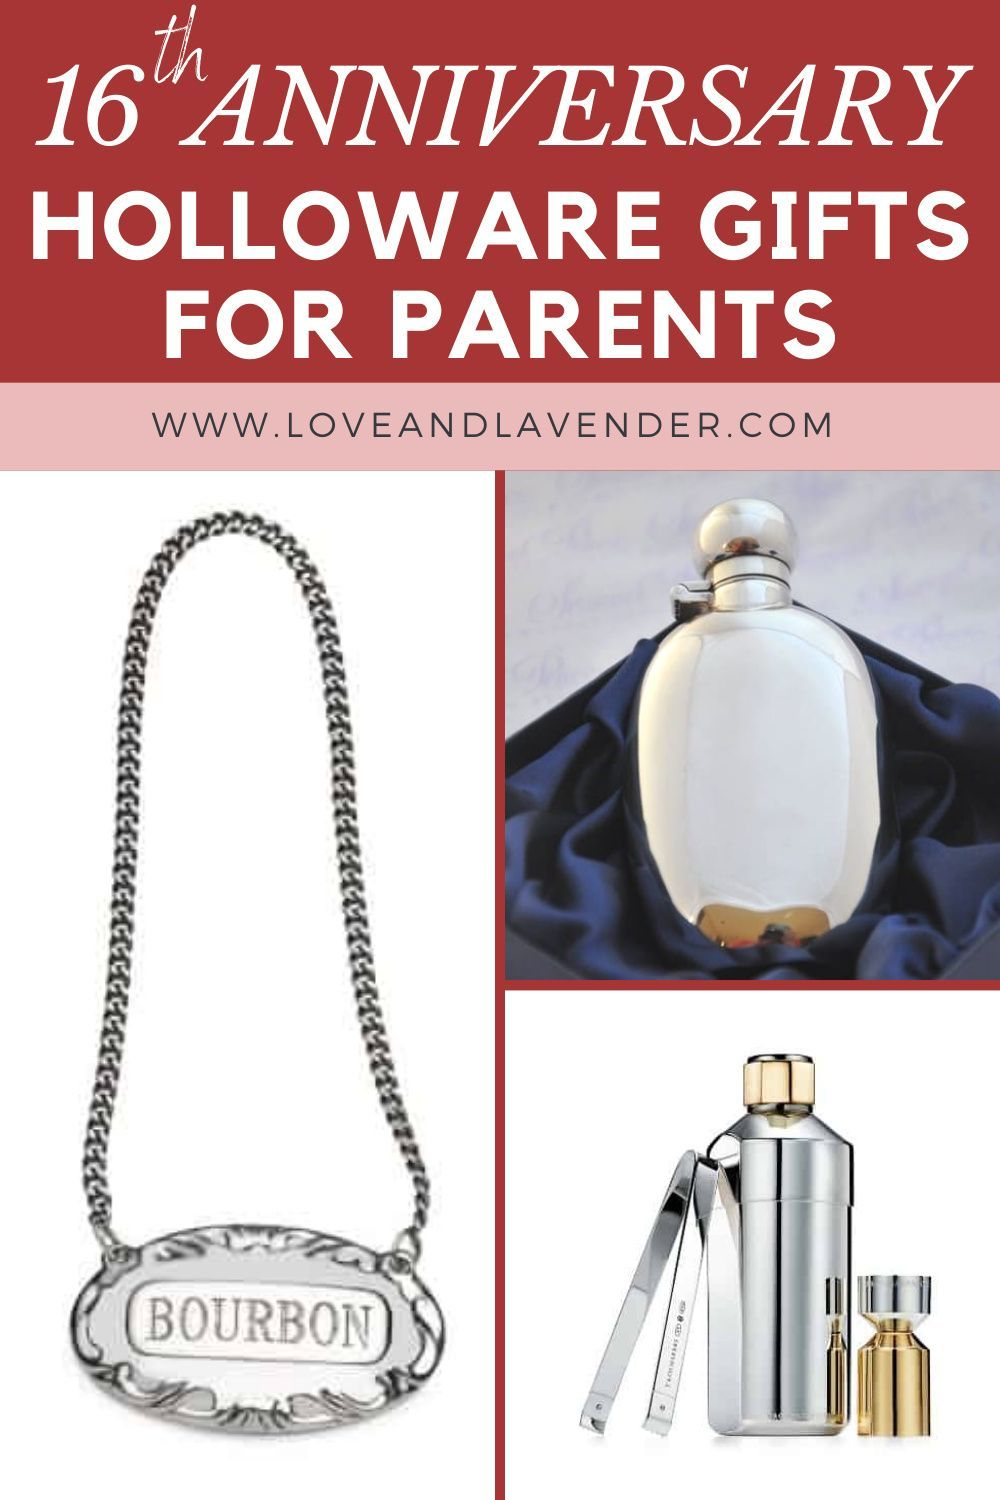 23 Anniversary Gifts For Your Sweet 16th Year 18th Anniversary Gifts Anniversary Gifts 23rd Anniversary Gifts